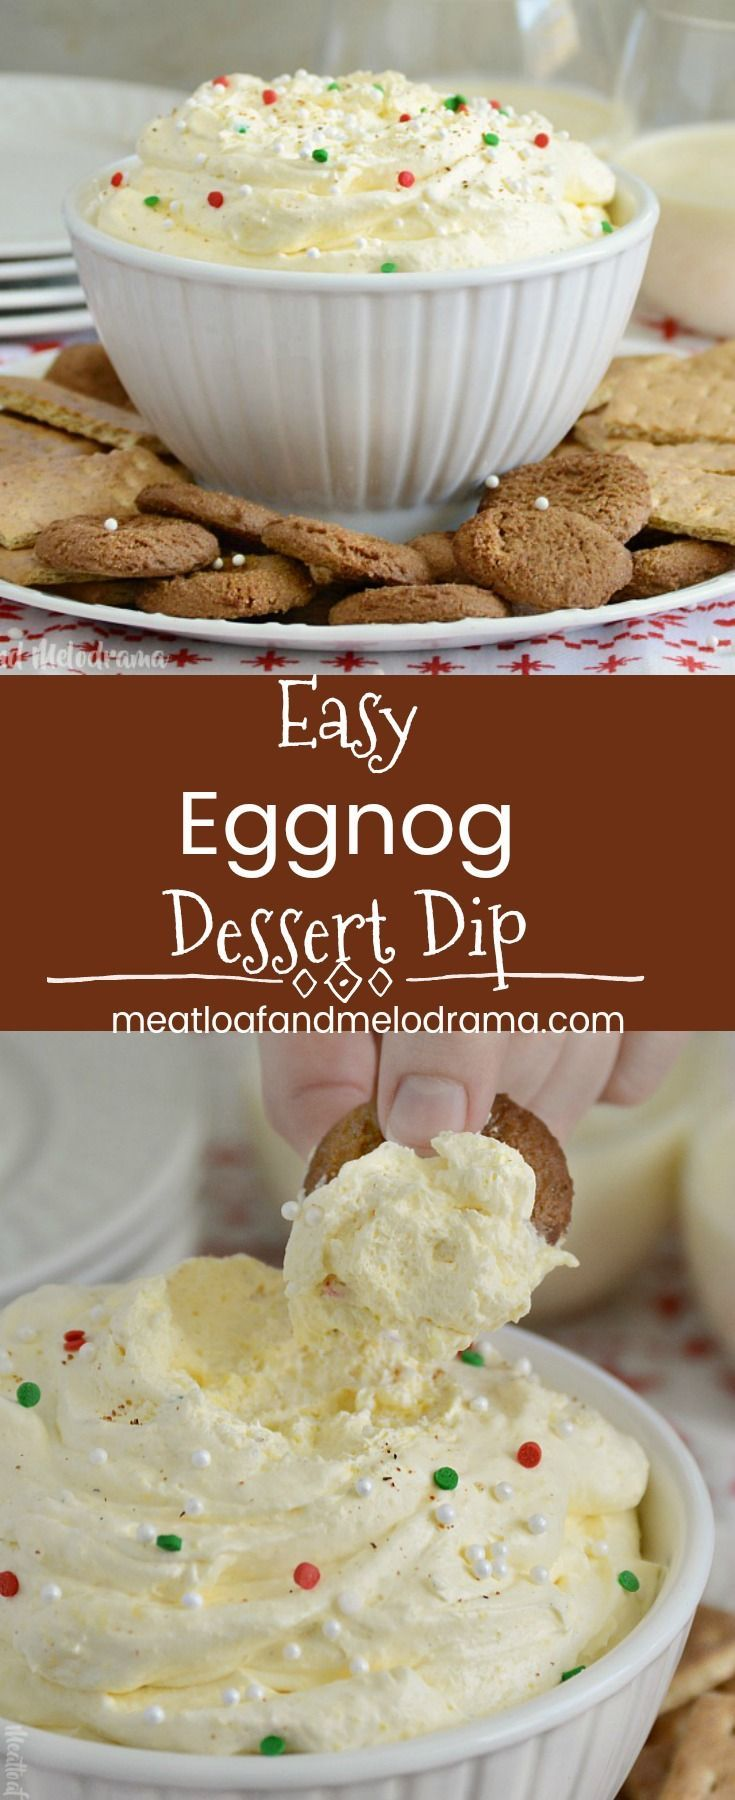 Easy Eggnog Dessert Dip - A quick and easy appetizer made with only 4 ingredients and perfect for Thanksgiving, Christmas or holiday parties and dinners. from Meatloaf and Melodrama #appetizers #holidays #party